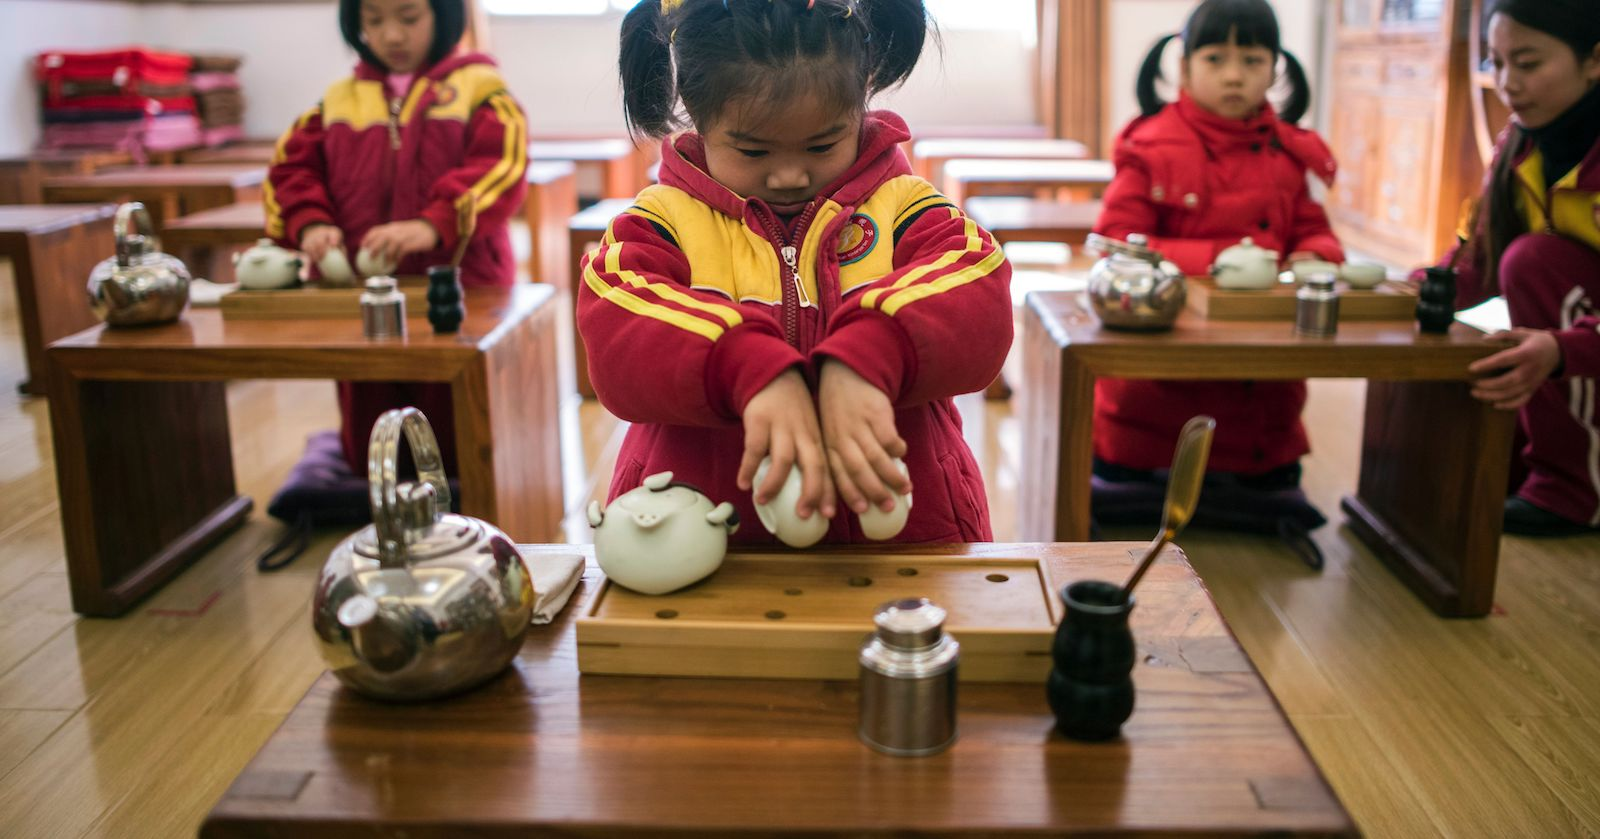 Girls learning to perform a tea ceremony in kindergarten. (Photo: Johannes Eisele via Getty)